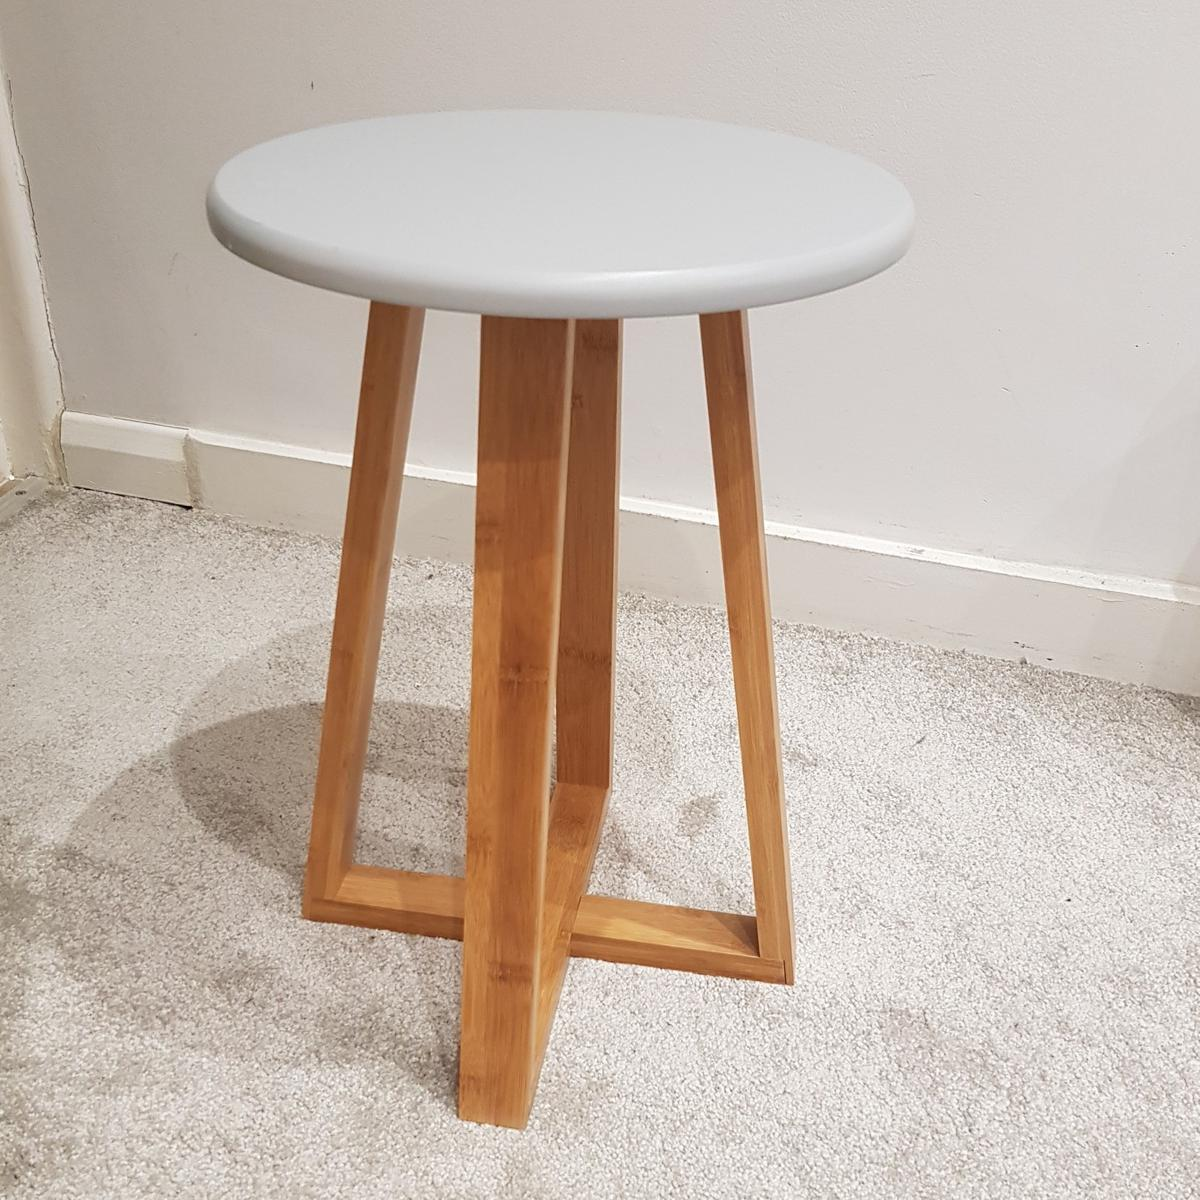 Groovy Wood Stool Side Table Plant Stand Squirreltailoven Fun Painted Chair Ideas Images Squirreltailovenorg